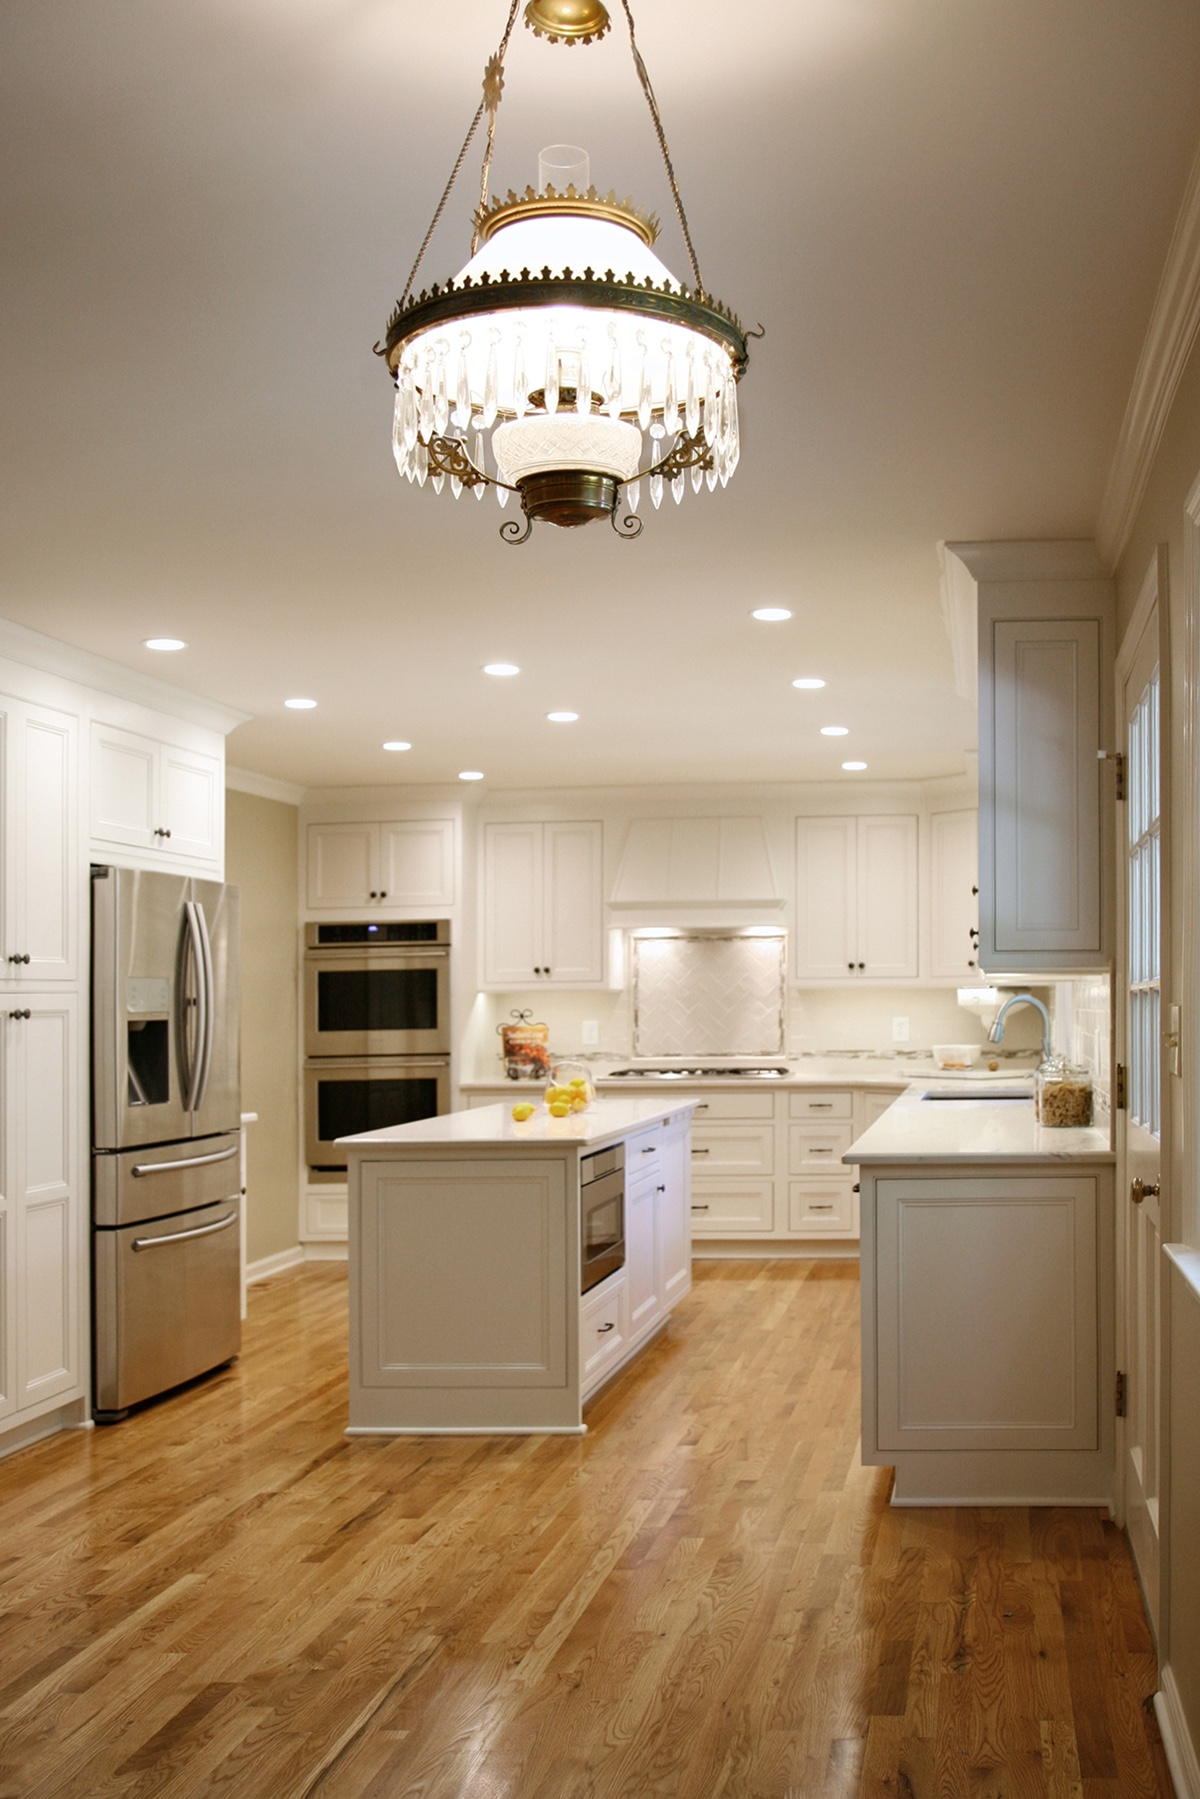 A Beautiful New Kitchen - The Counterpoint Group